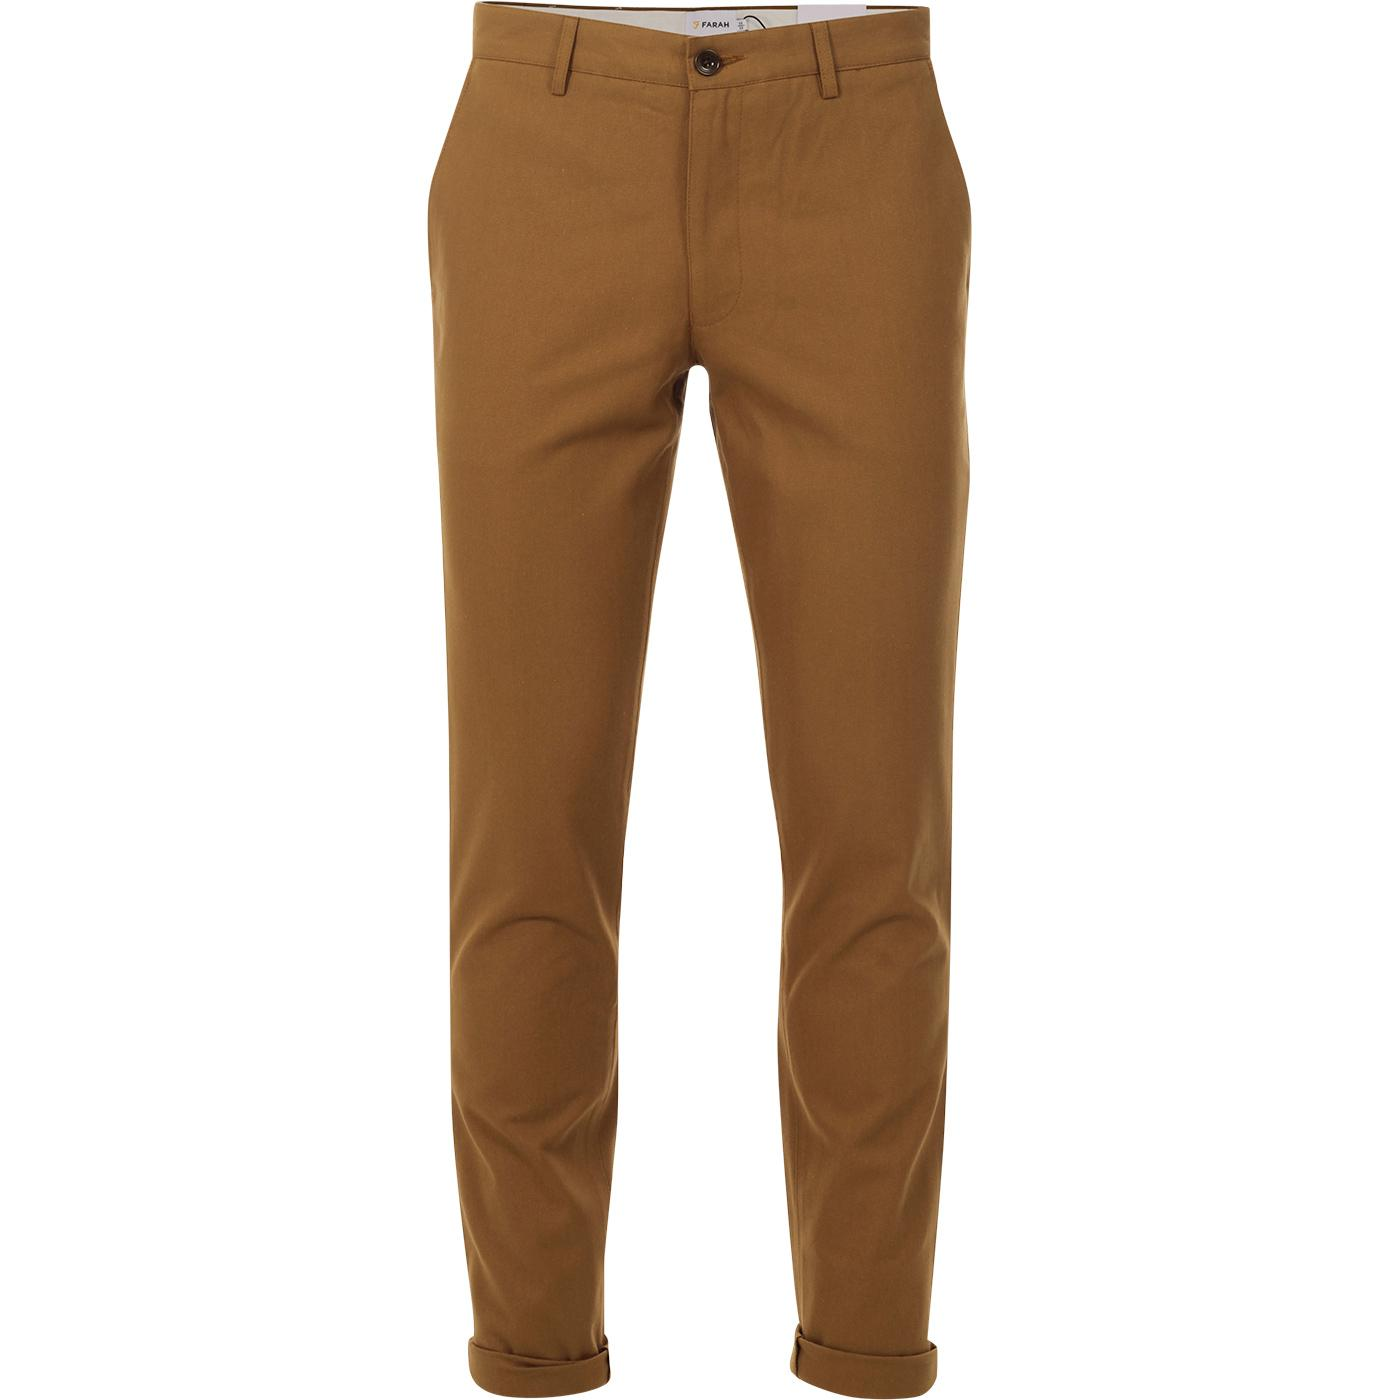 Elm FARAH Retro Mod Slim Hopsack Trousers  (BROWN)